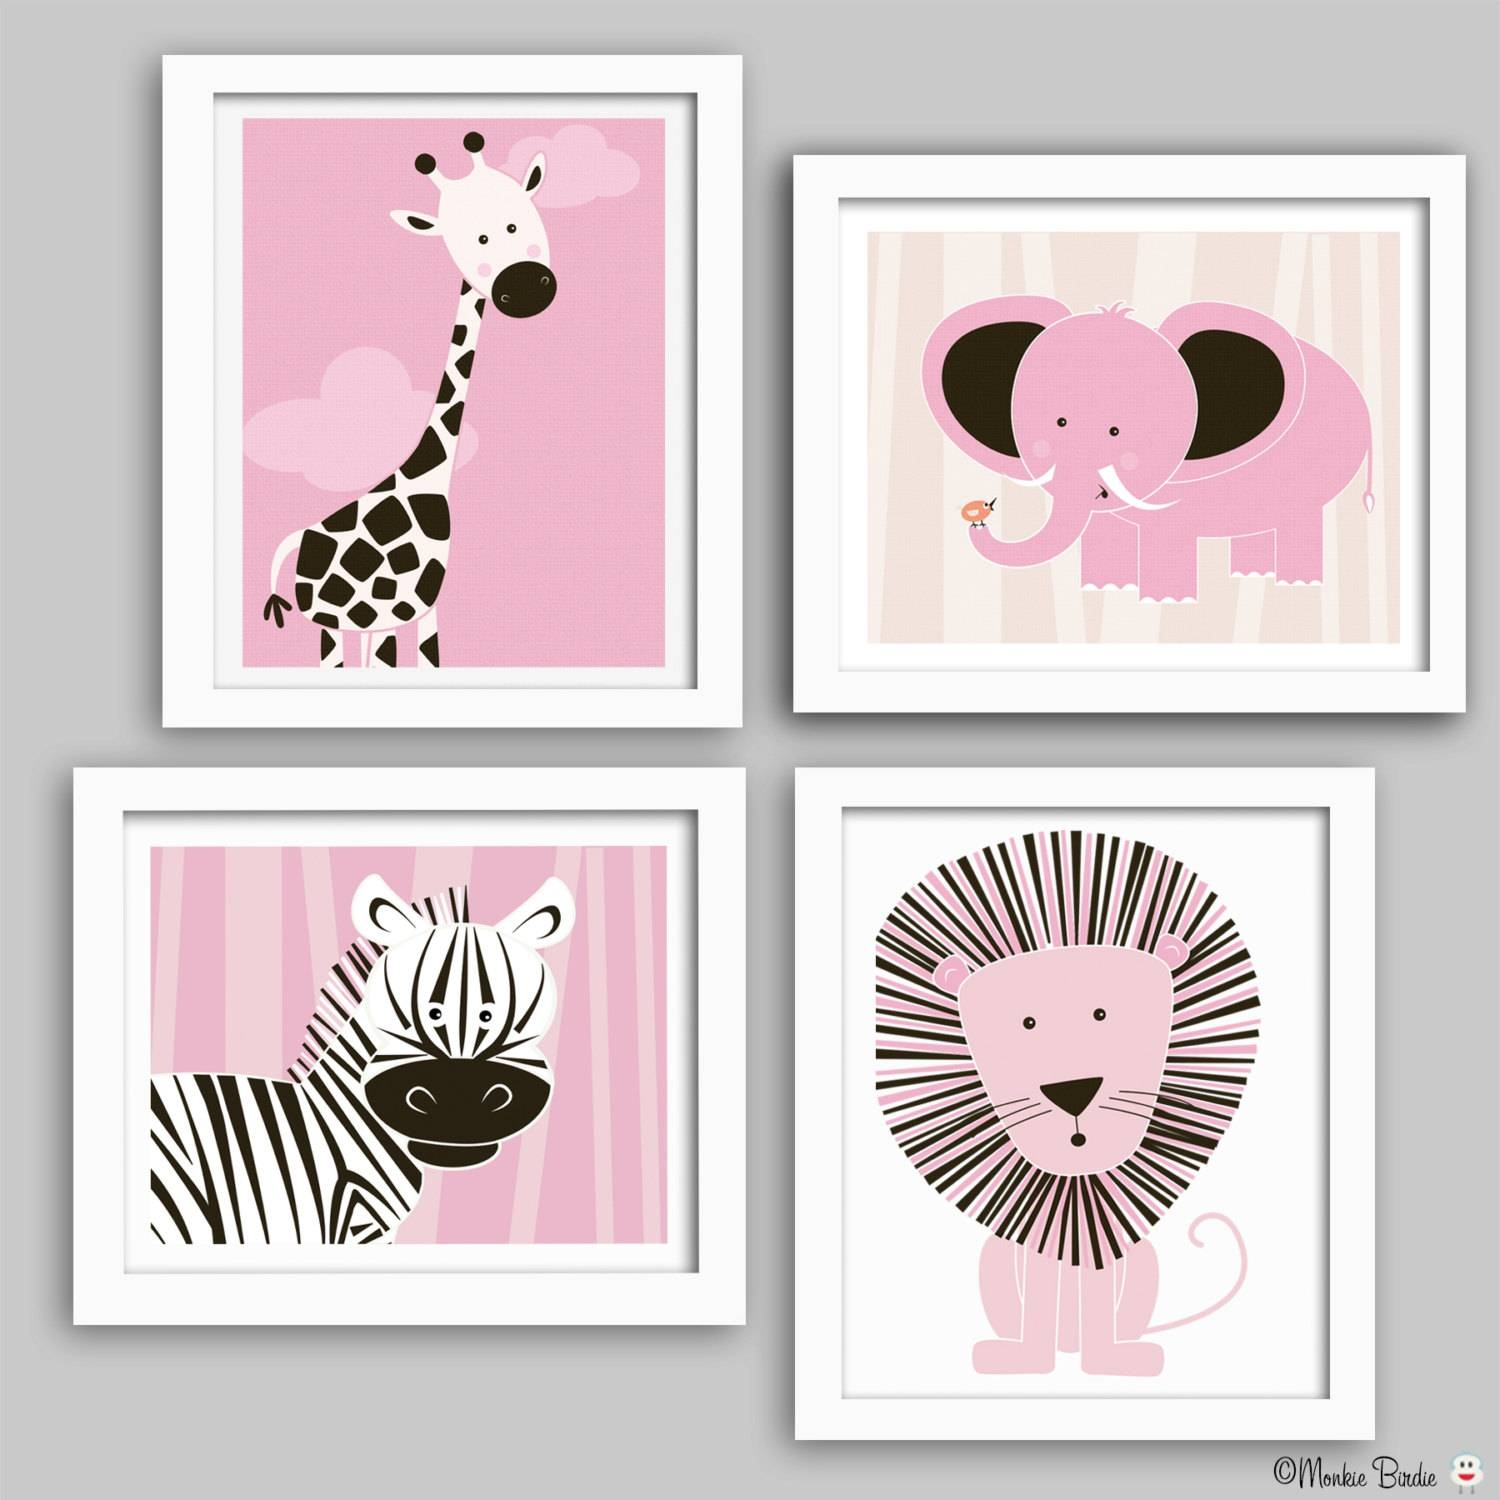 Charming Design Baby Nursery Wall Art Clever Ideas 25 Best Ideas For Newest Baby Wall Art (View 23 of 30)